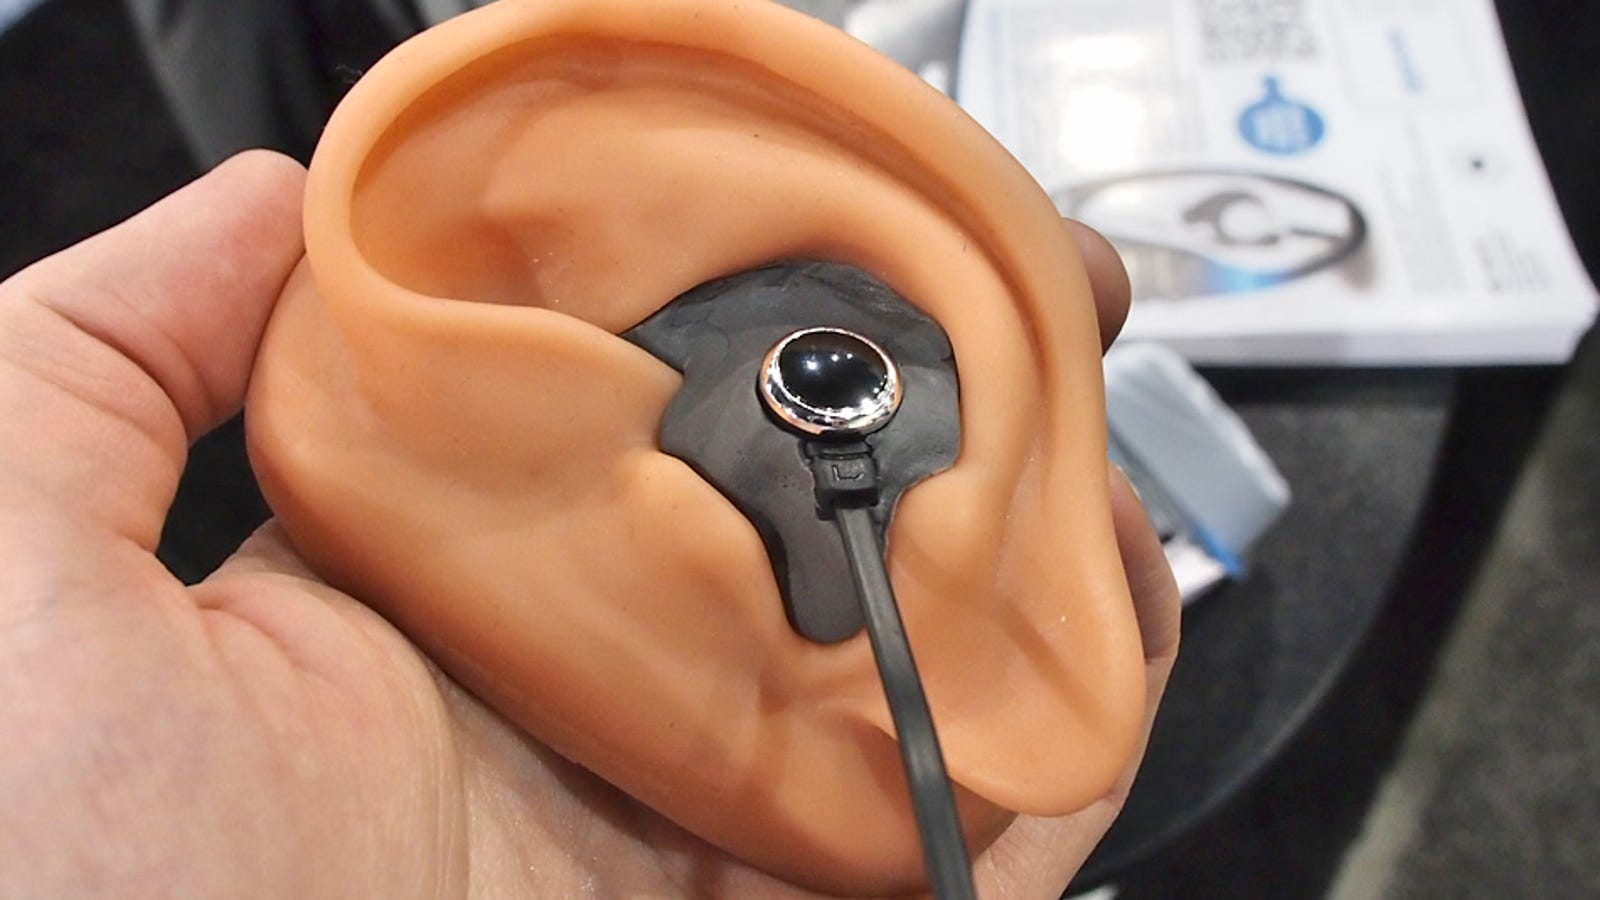 retractable earbuds jack - Sharkfin Promises Custom-Fitted Earbuds For Just $5